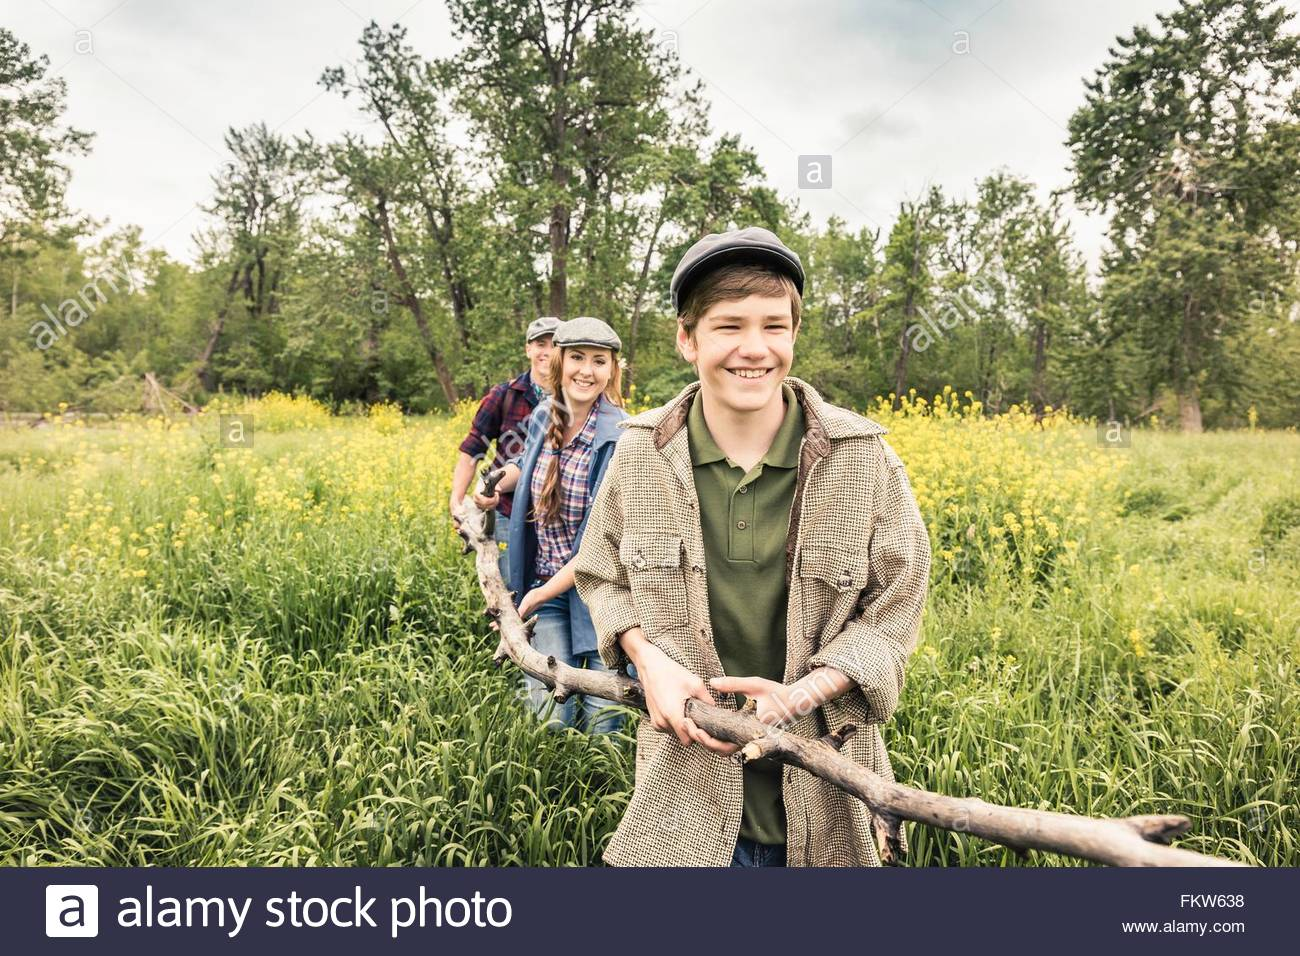 Young adults and teen boy in tall grass carrying branch smiling - Stock Image